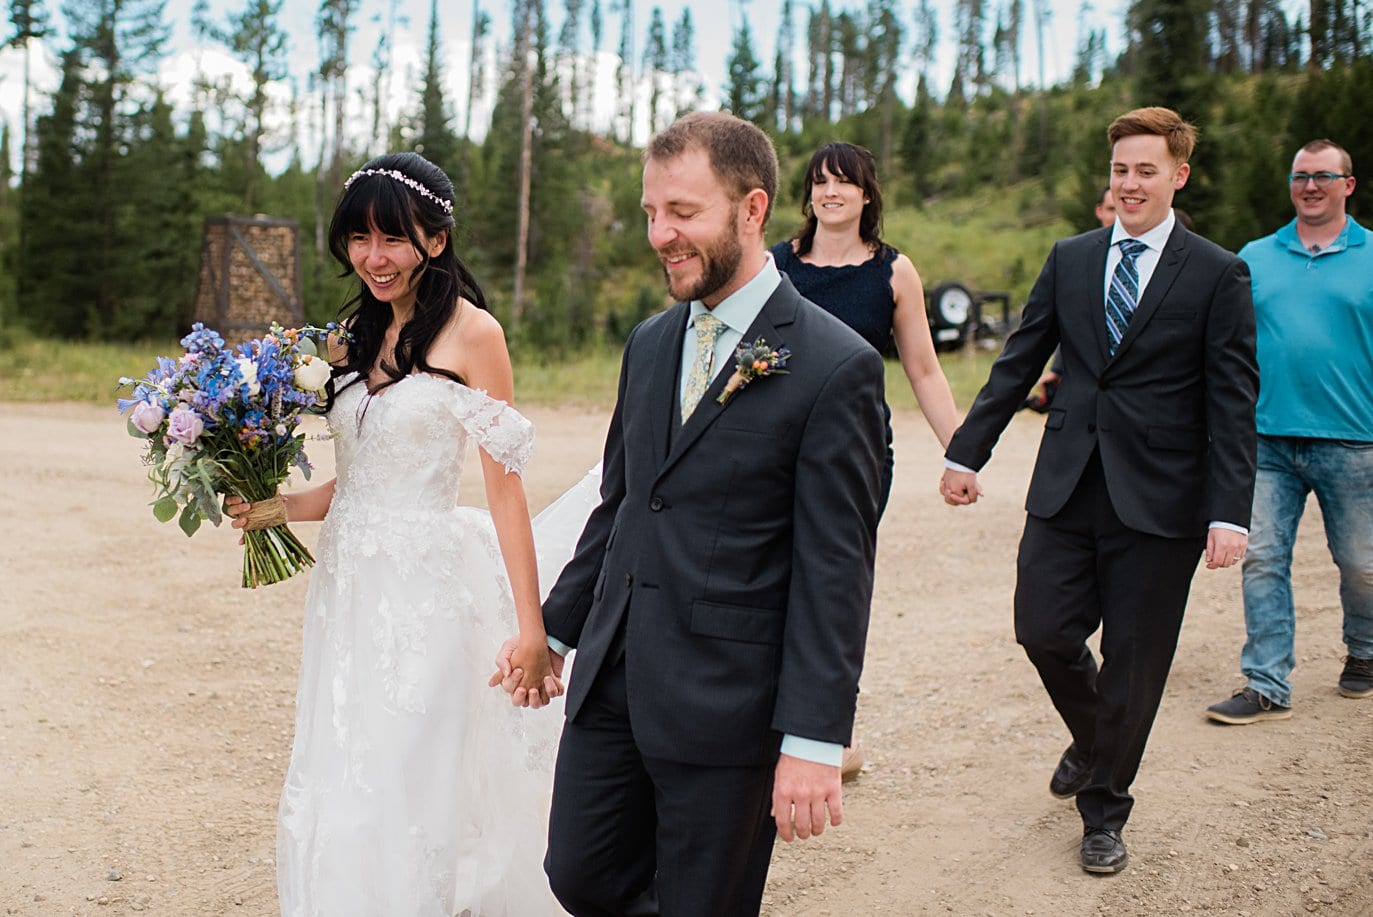 bride and groom walk hand in hand to ceremony in meadow at intimate Grand Lake wedding by Denver wedding photographer Jennie Crate